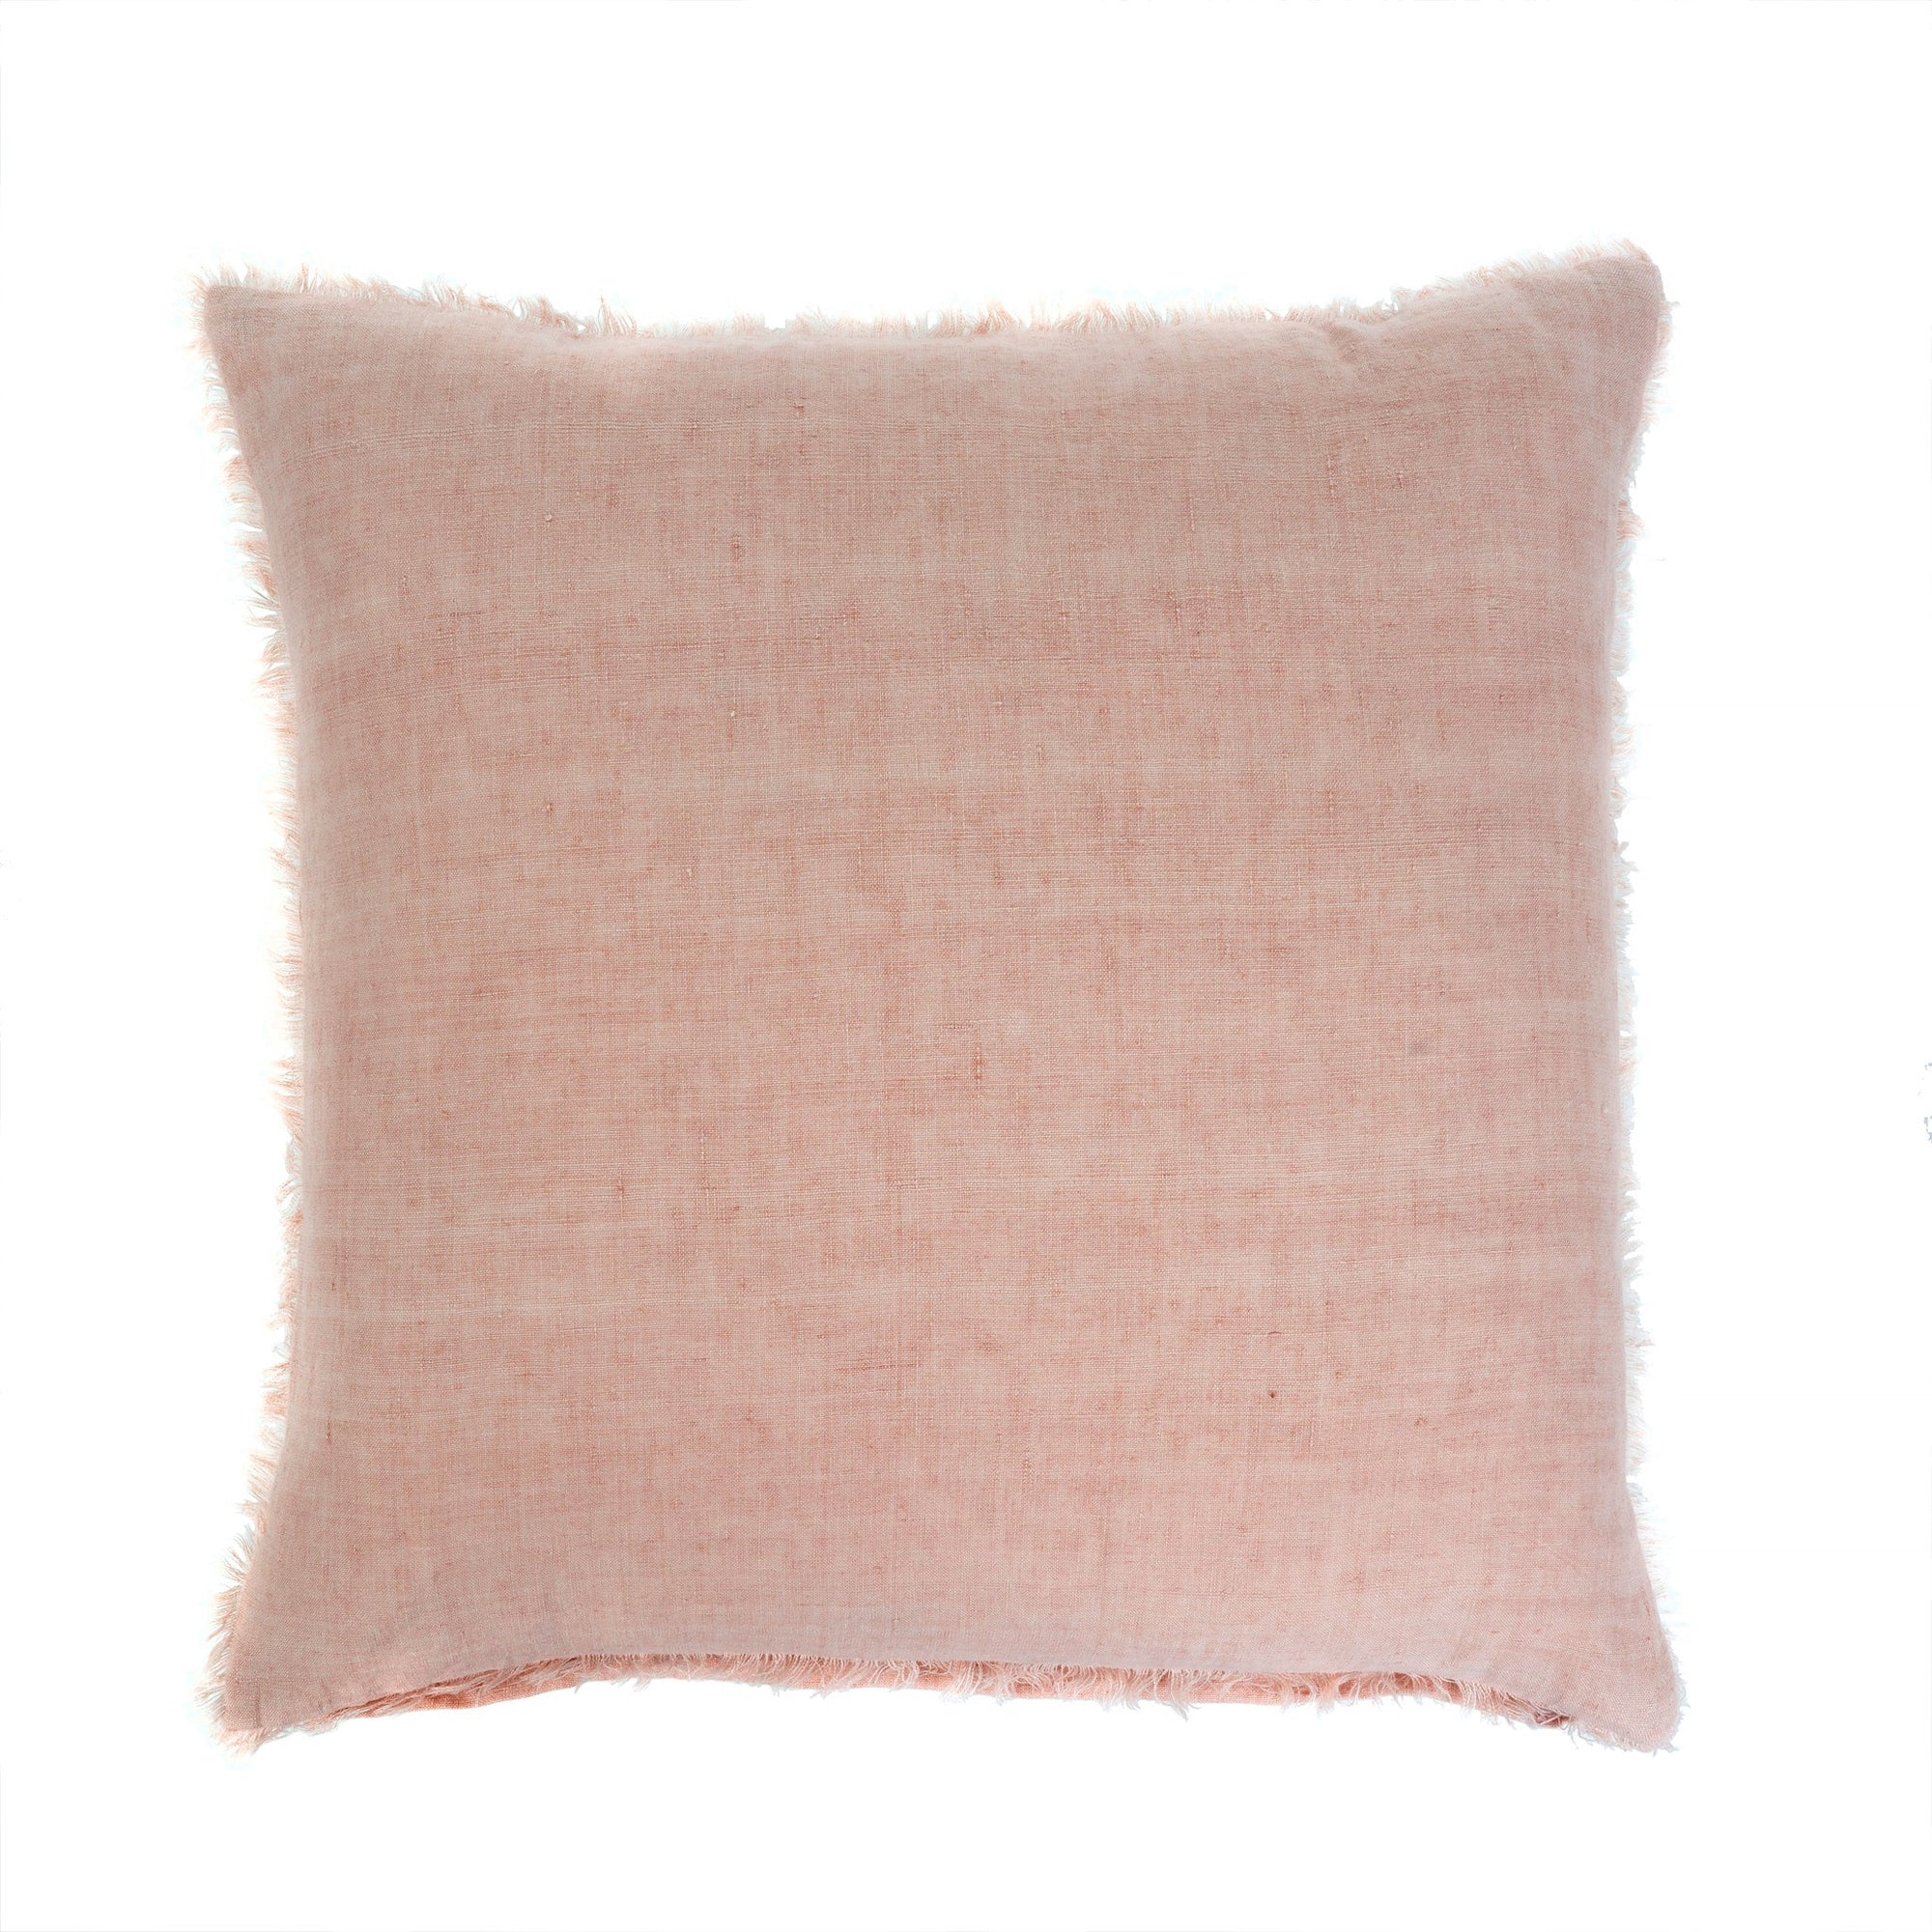 Lina Linen Pillow - Peach